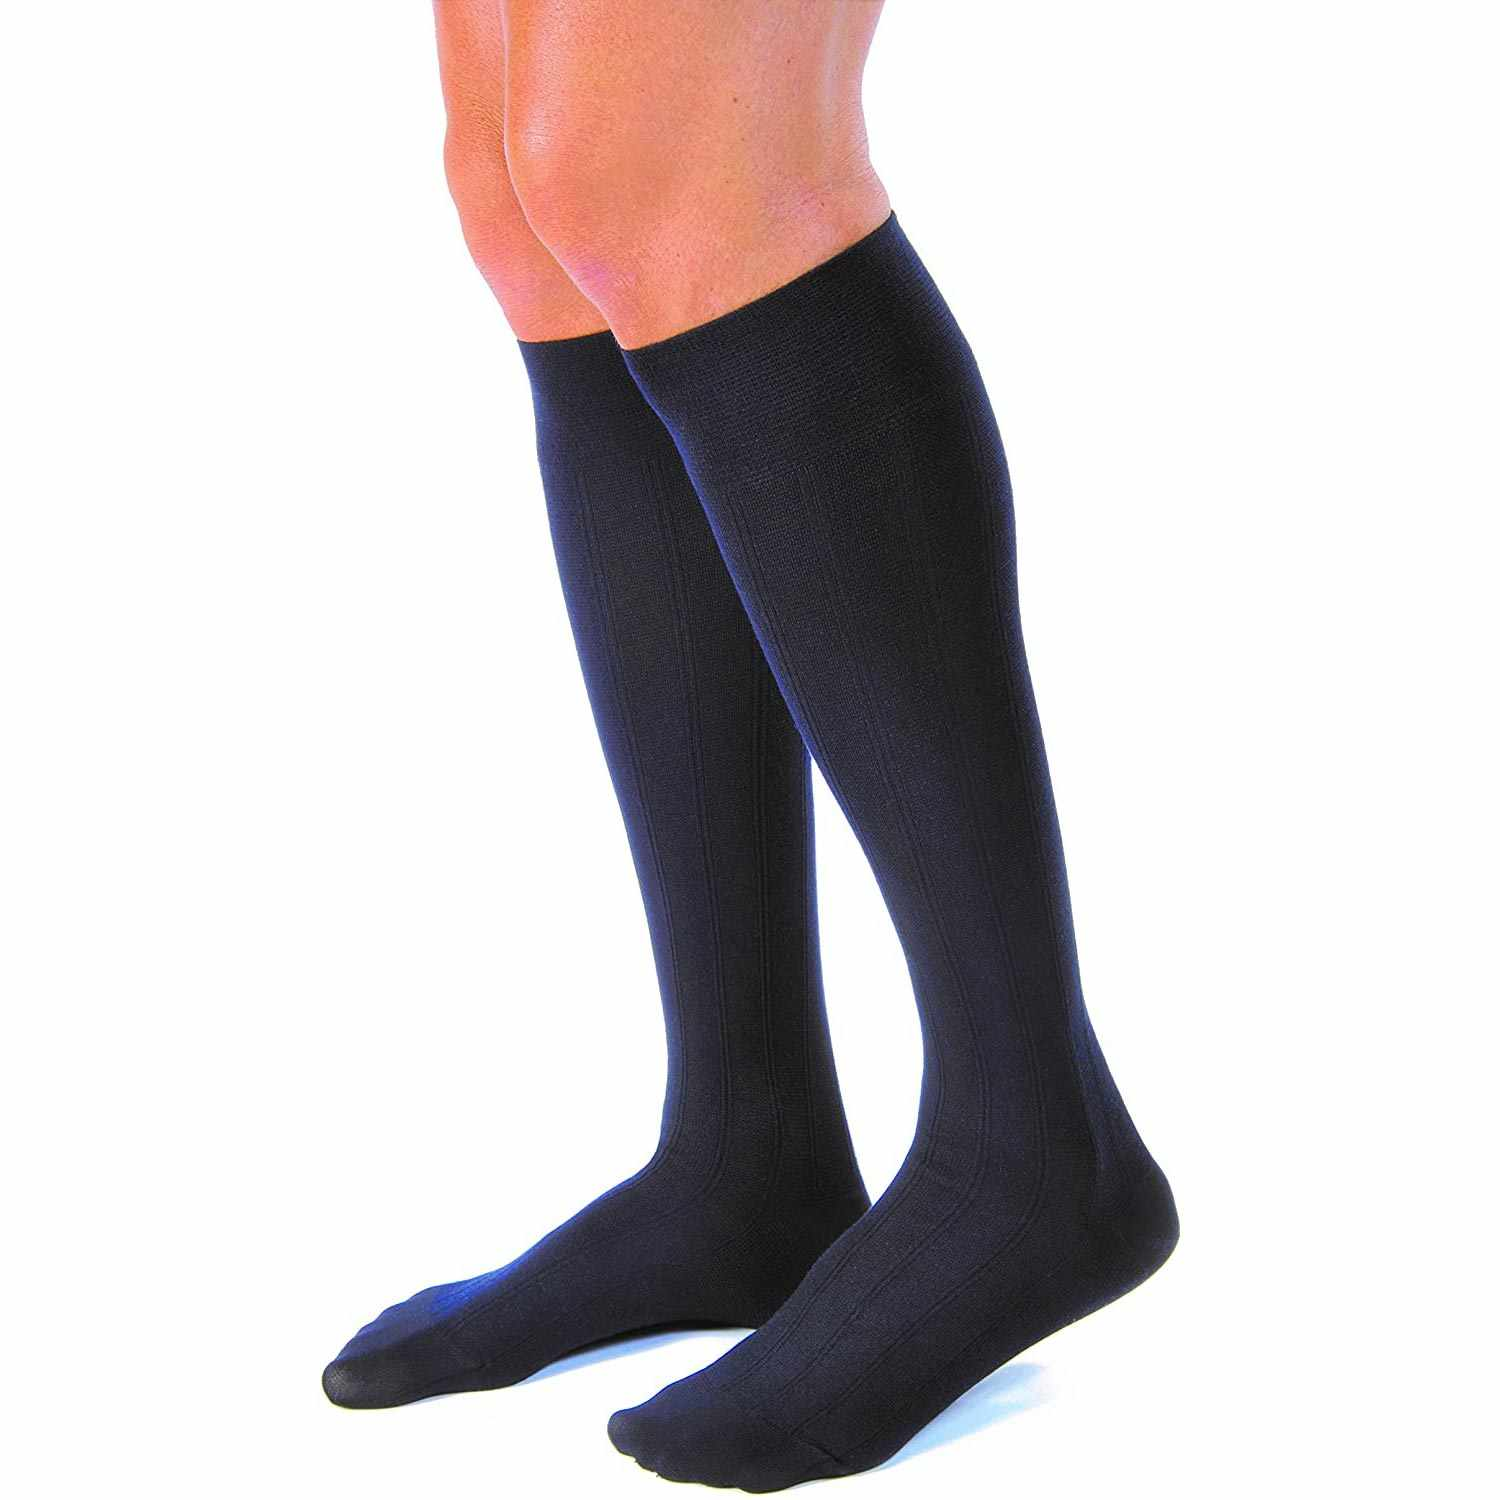 Jobst Casual Knee-High Men Compression Socks, Closed Toe, X-Large, Navy